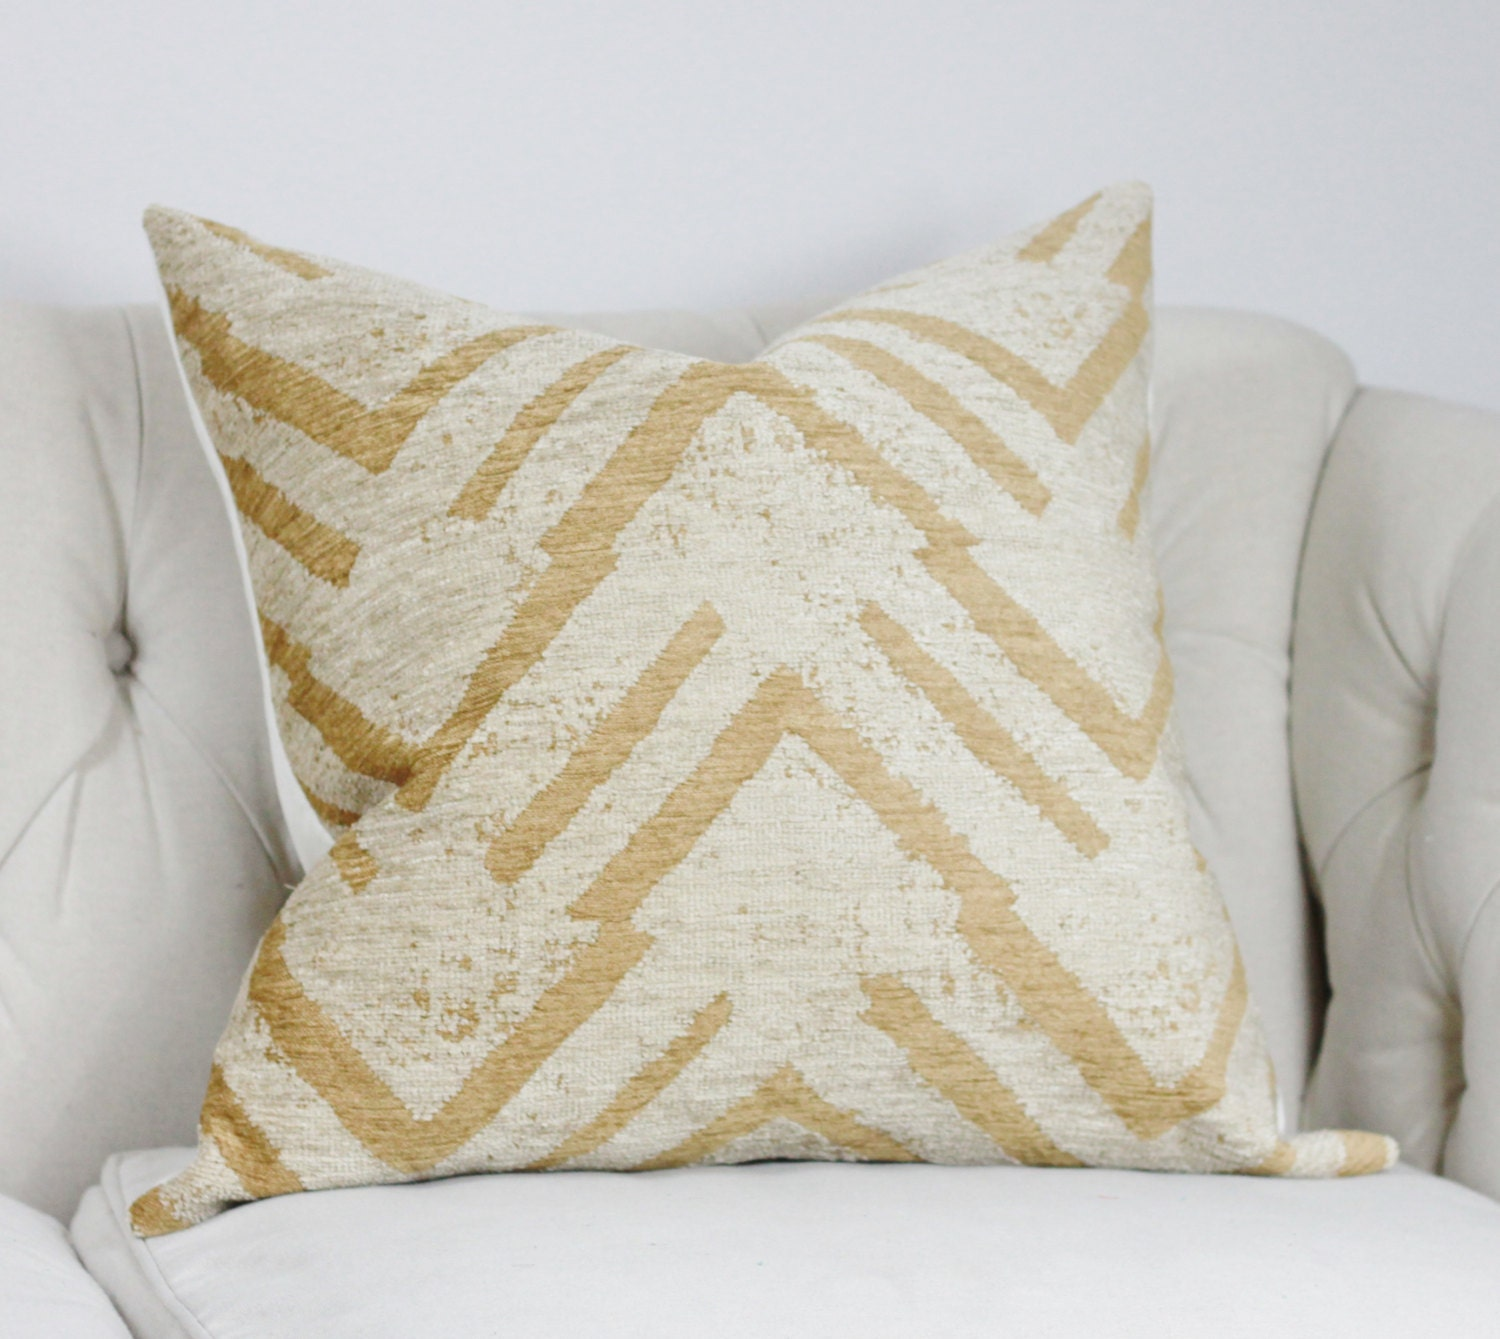 Throw Pillows Native American : Tan and Gray Geometric Pillow Neutral Zig Zag Throw Pillow